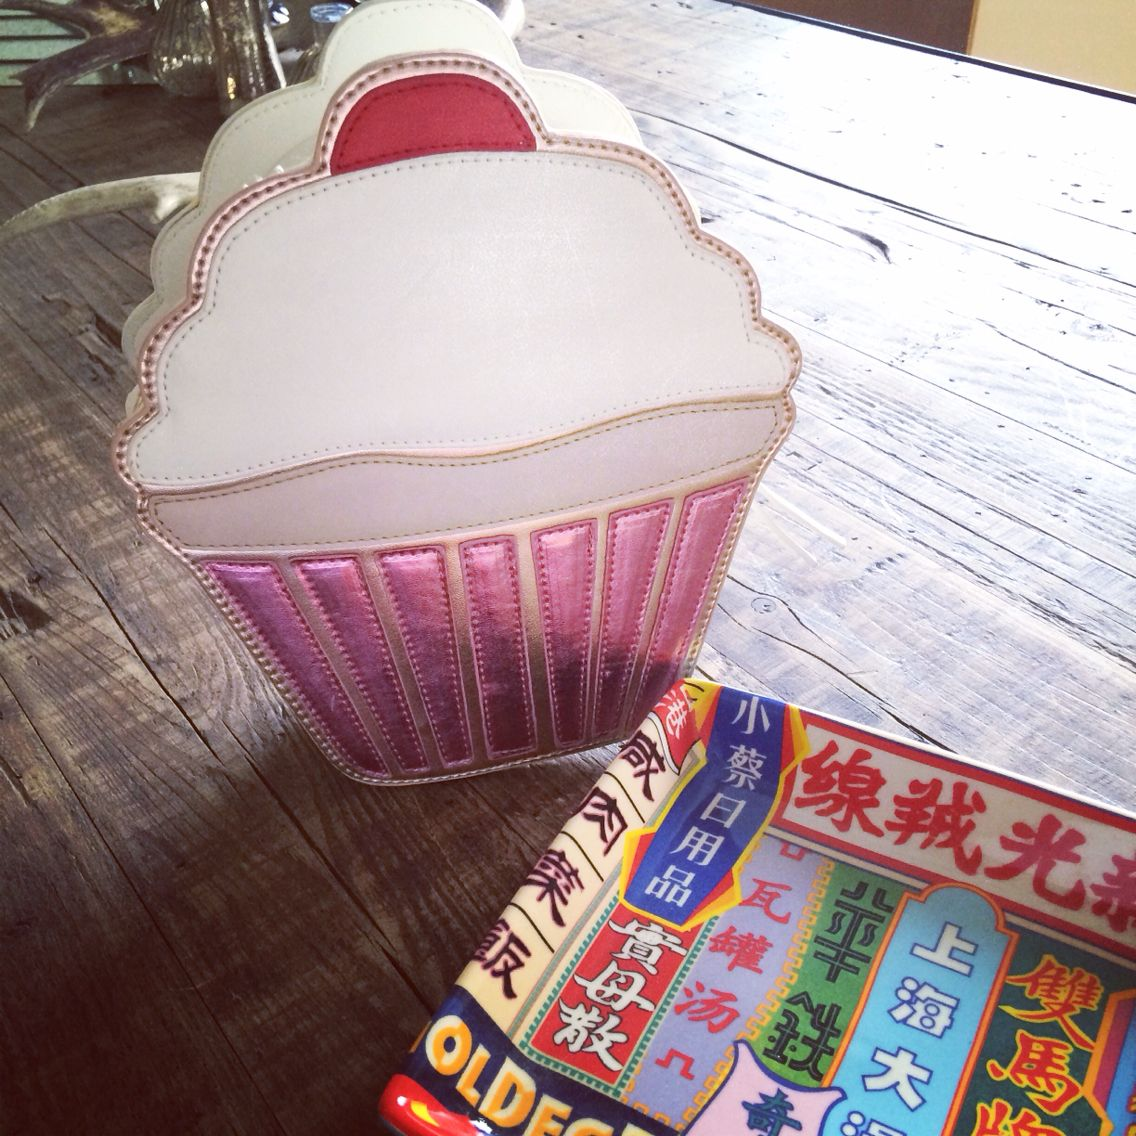 Cupcakes are always the answer... Who cares what the question is  Cupcake bag available #PinkRevolver